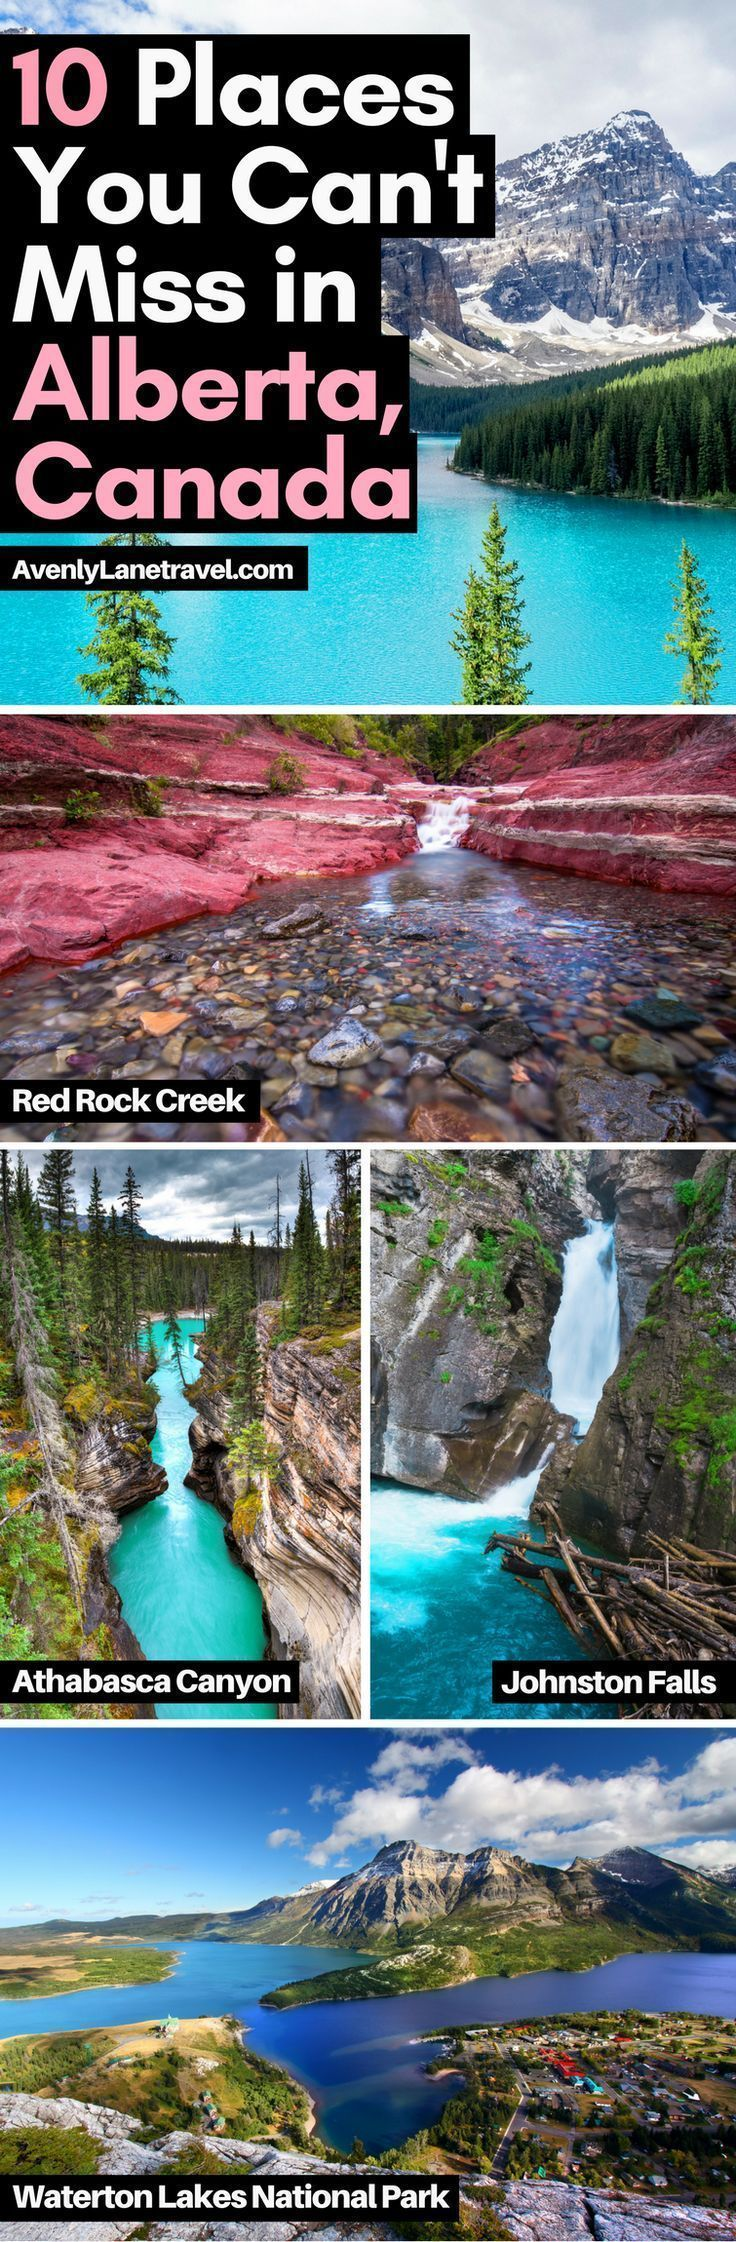 10 Amazing Things To See And Do In Alberta, Canada! It is the perfect destination for the outdoorsy person. There is so much to see there! Including visiting the Columbia Icefields, Banff National Park, Lake Abraham, Lake Louise, Peyto Lake and much more! #avenlylanetravel #canada #travel #canadatravel